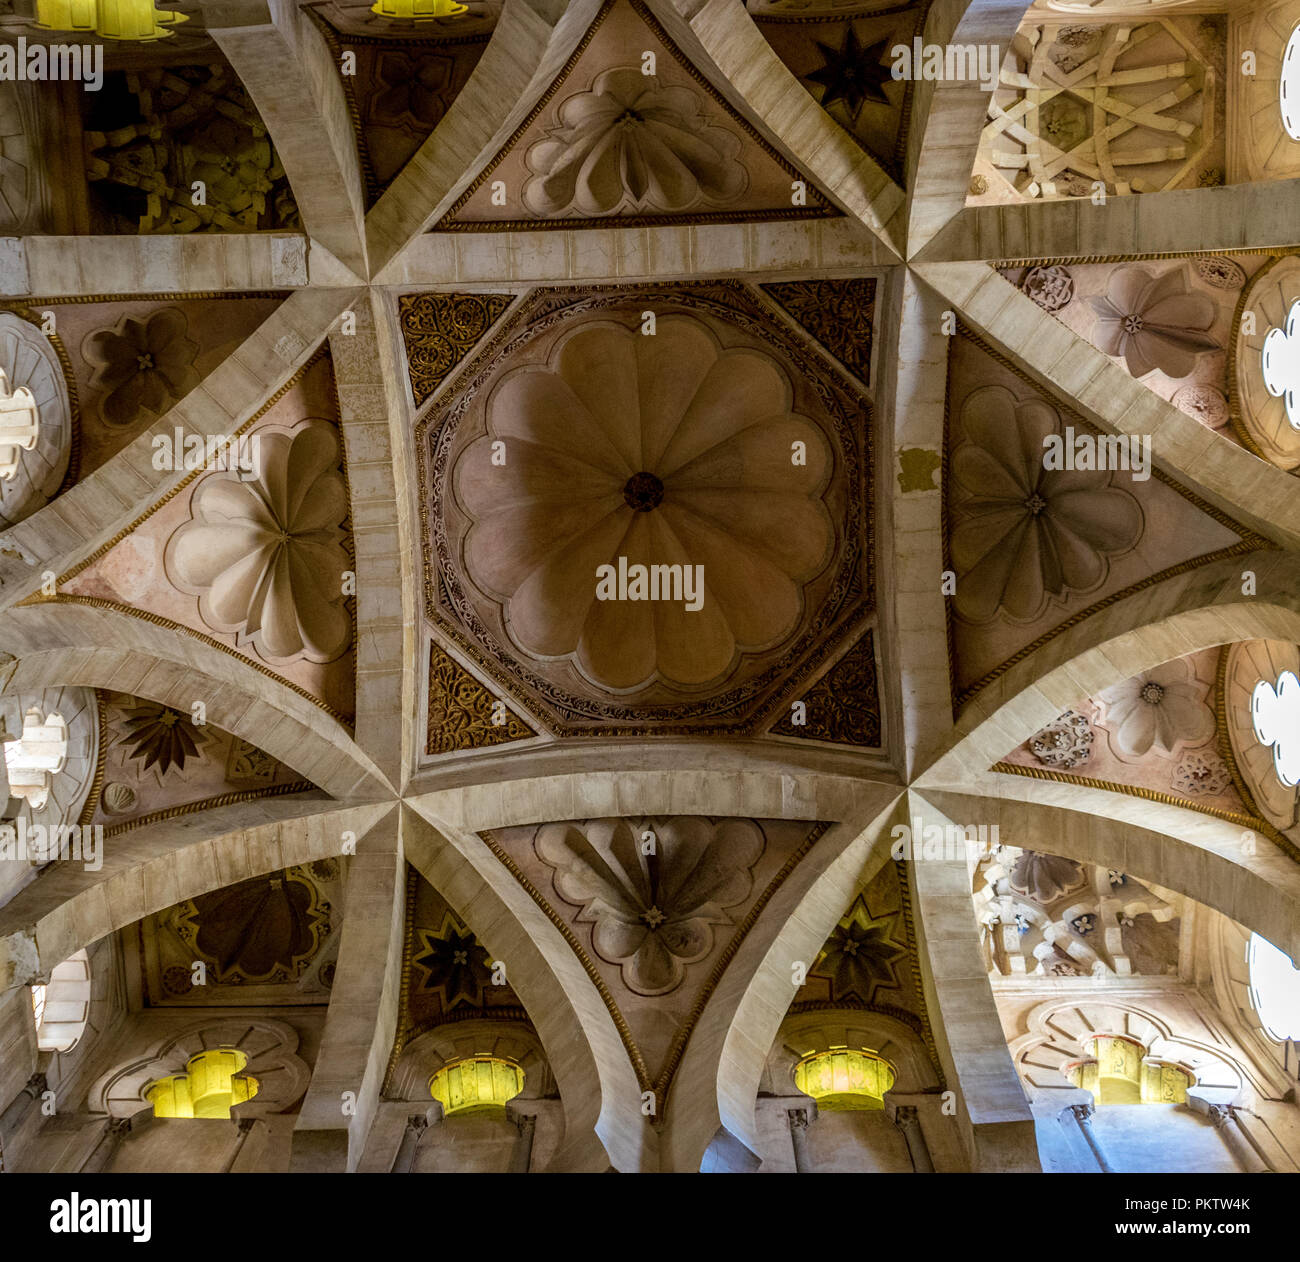 Cordoba, Spain - June 20, 2017: Intricate trapezoidal design with flower petals on the ceiling of the Msque Church in Cordoba, Spain, Europe, Andaluci - Stock Image